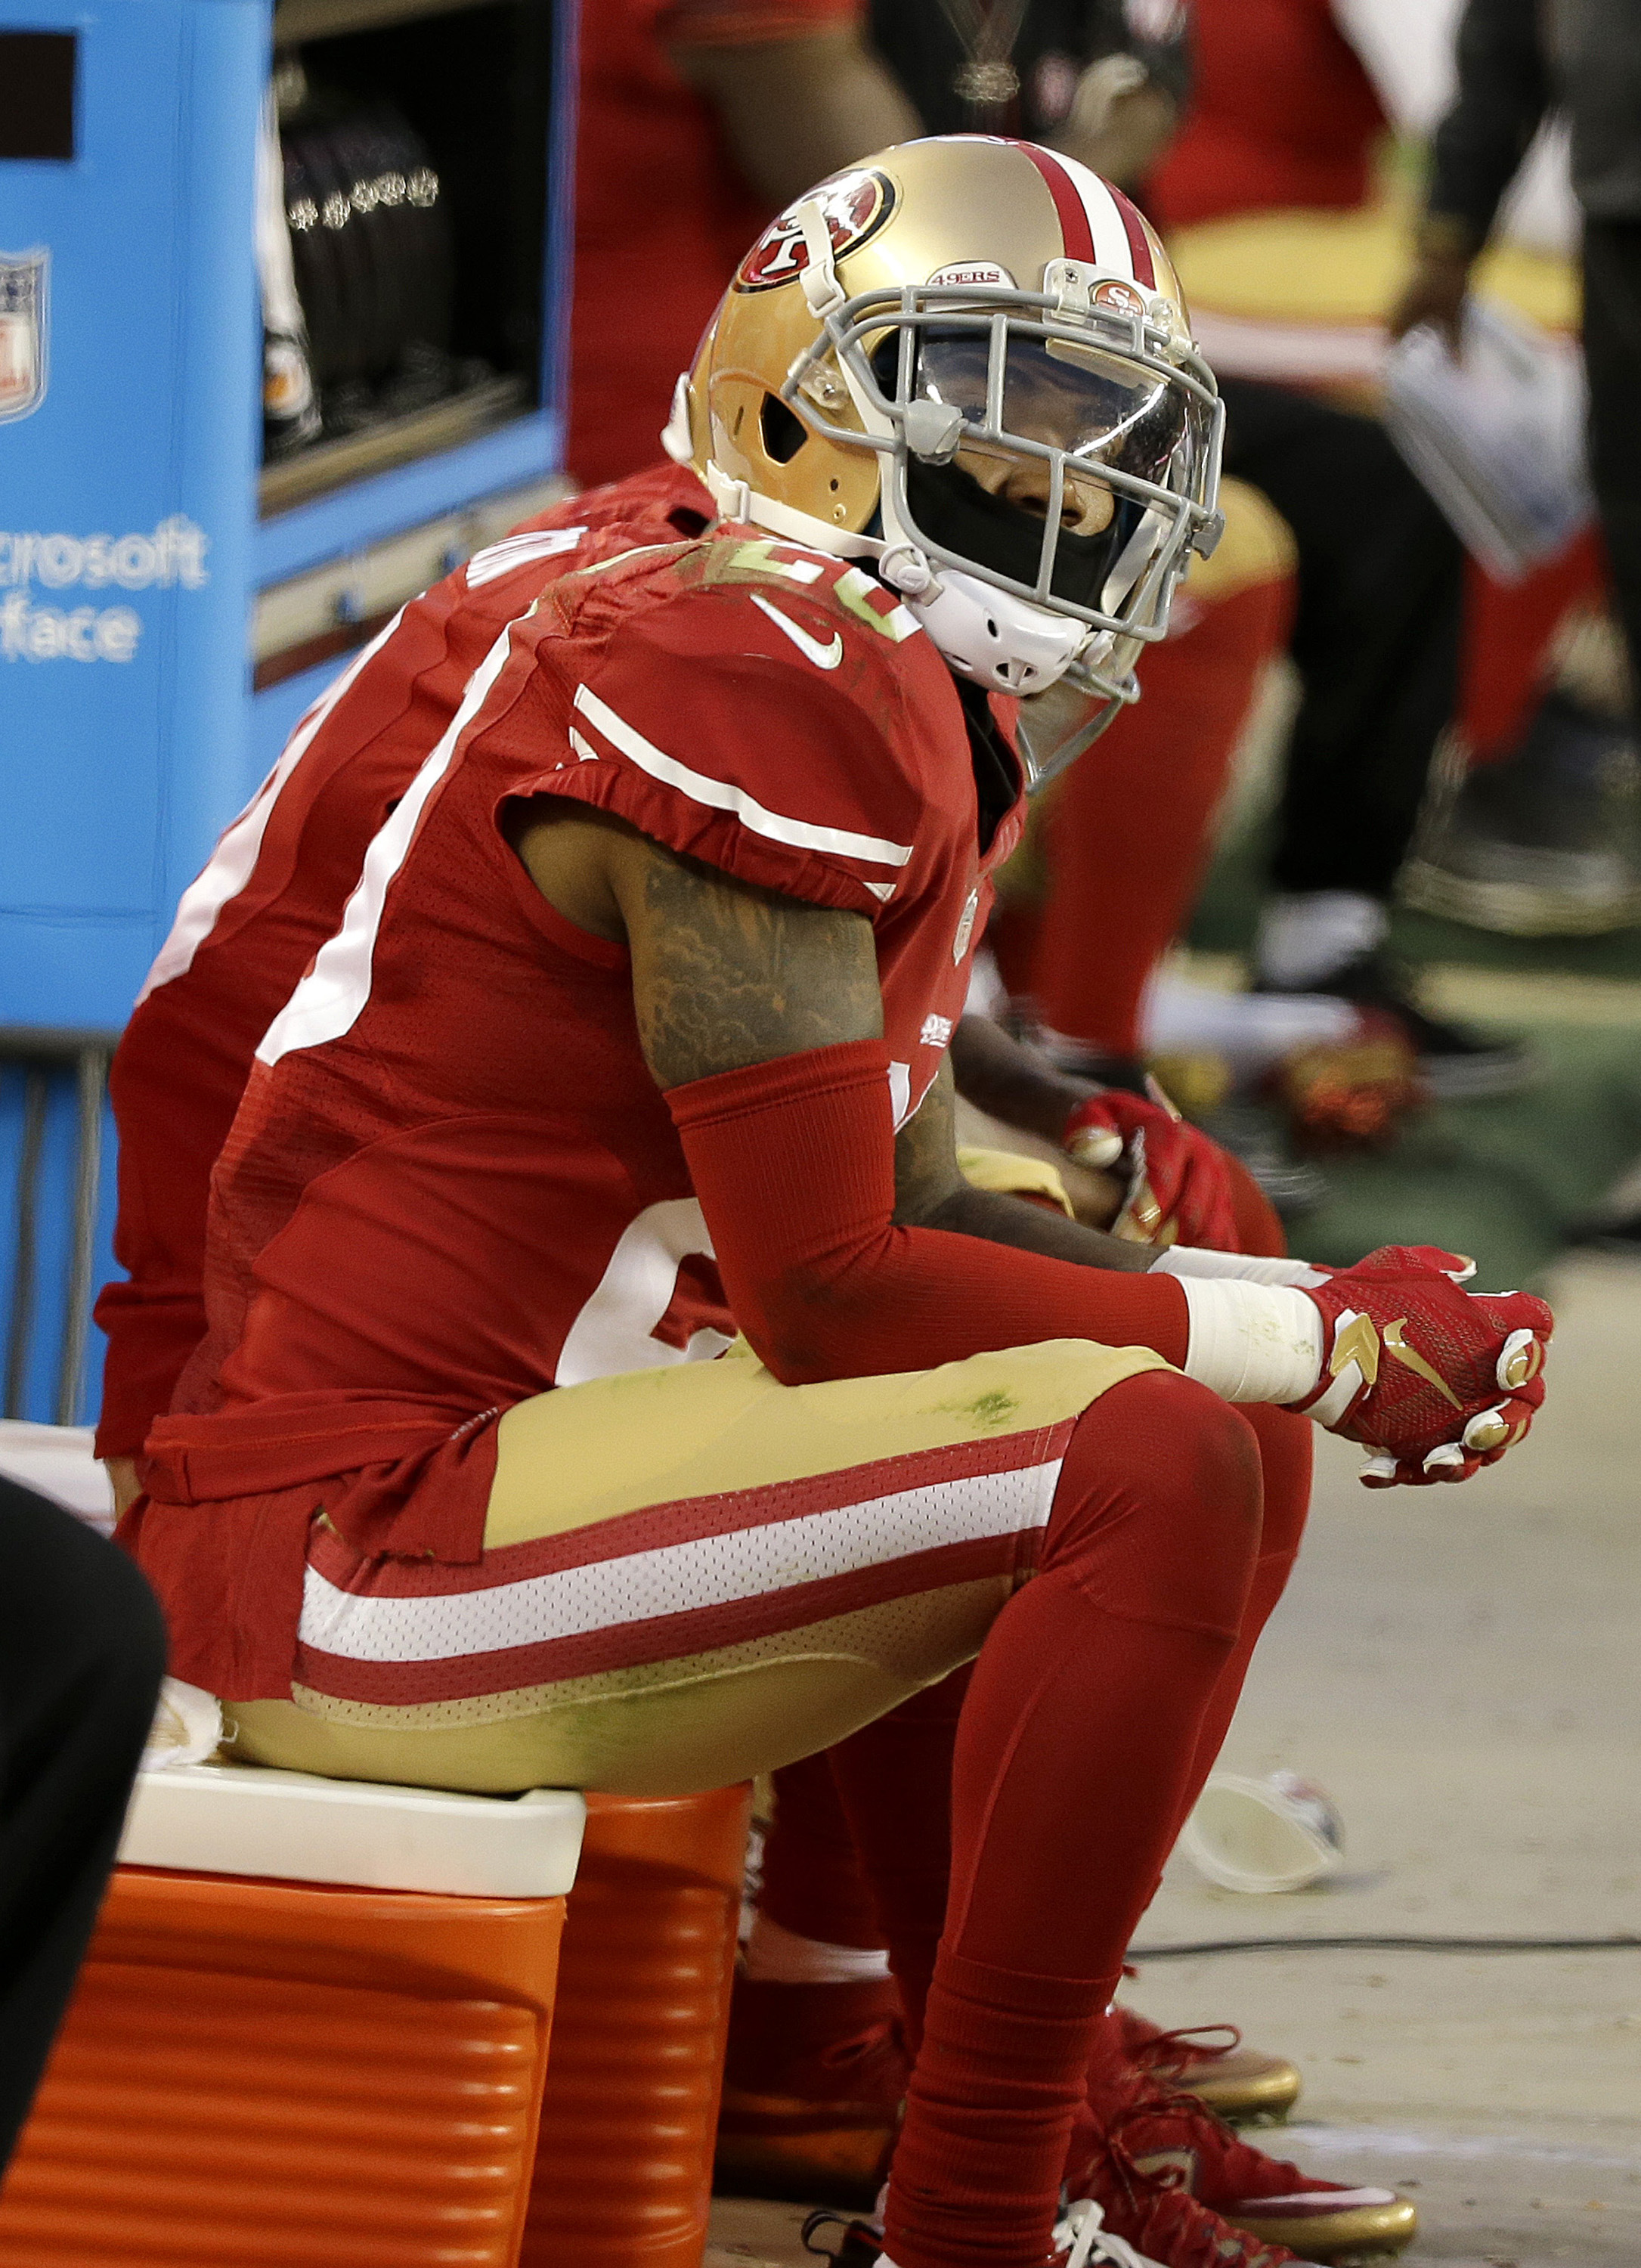 San Francisco 49ers cornerback Kenneth Acker (20) sits on the sideline during the second half of an NFL football game against the Cincinnati Bengals in Santa Clara, Calif., Sunday, Dec. 20, 2015. (AP Photo/Eric Risberg)